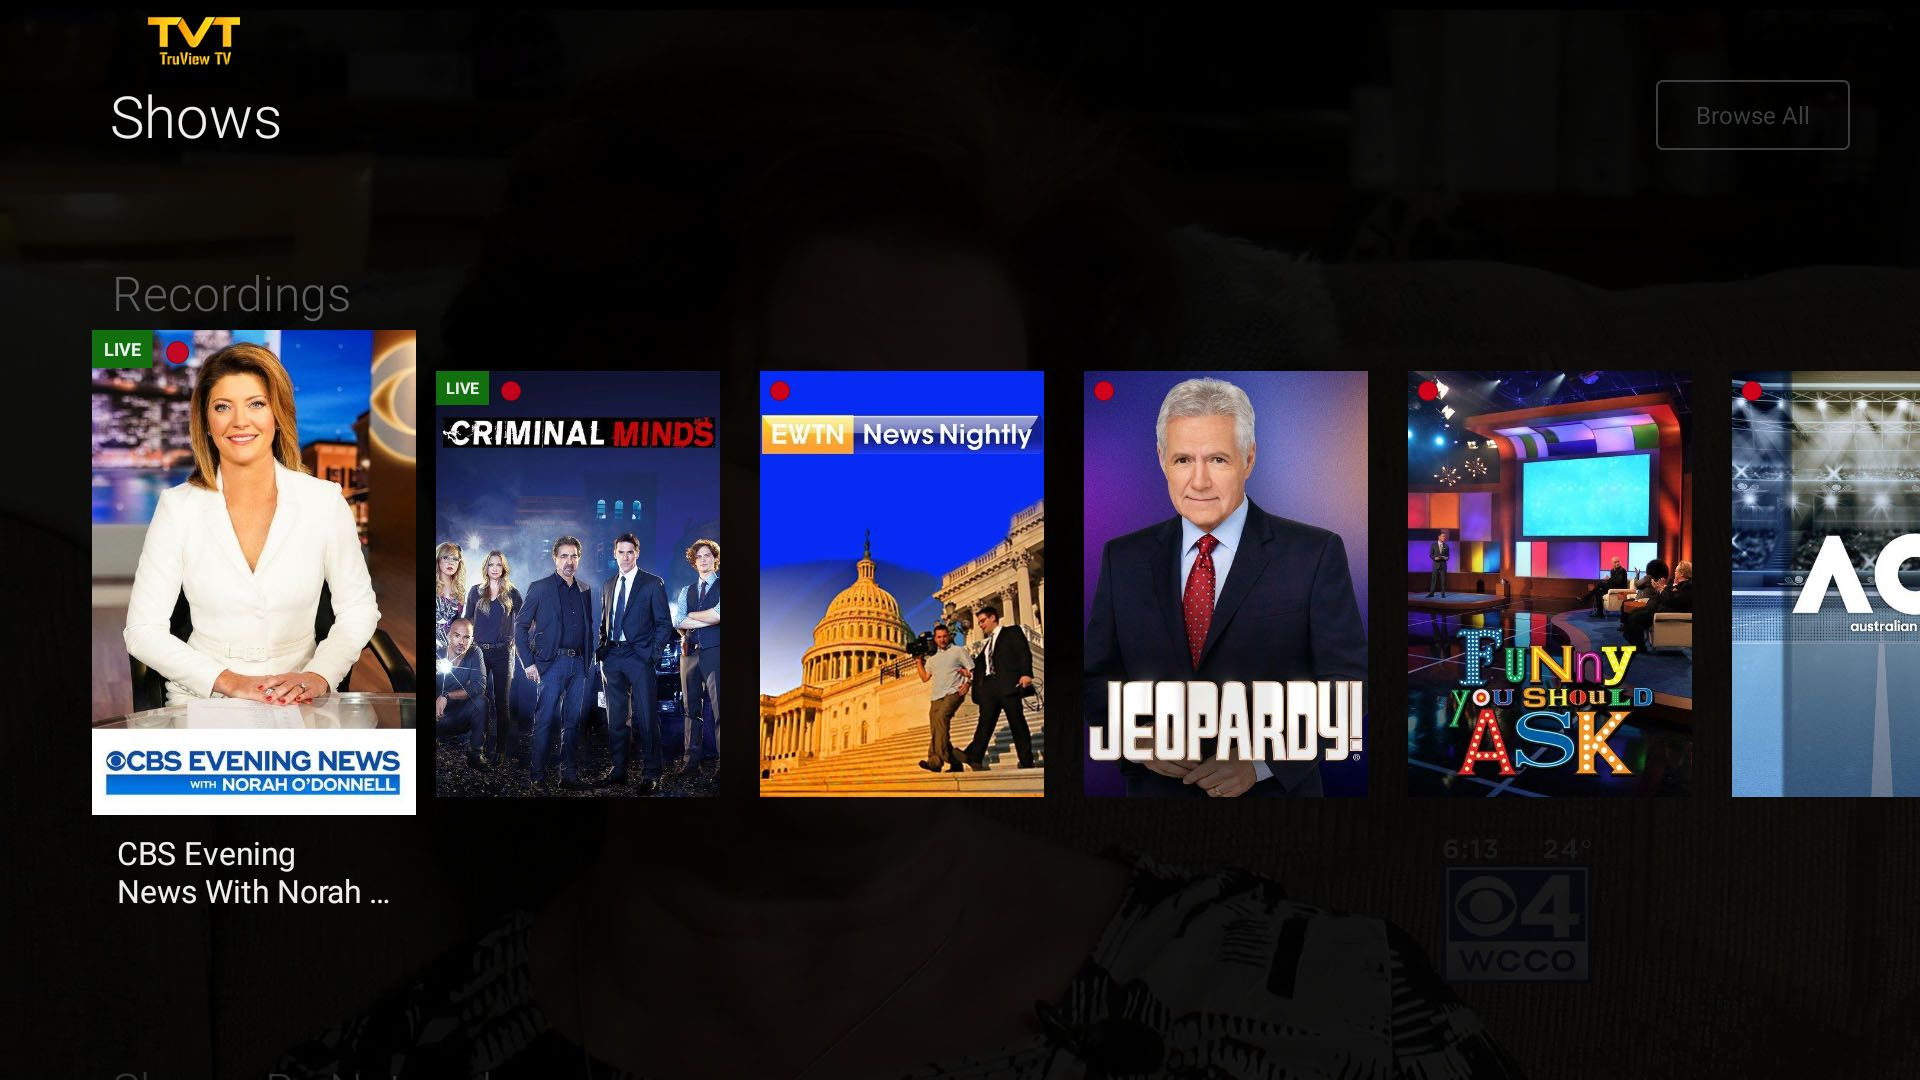 Best Iptv Streaming Service Streaming Services Streaming Tv Streaming